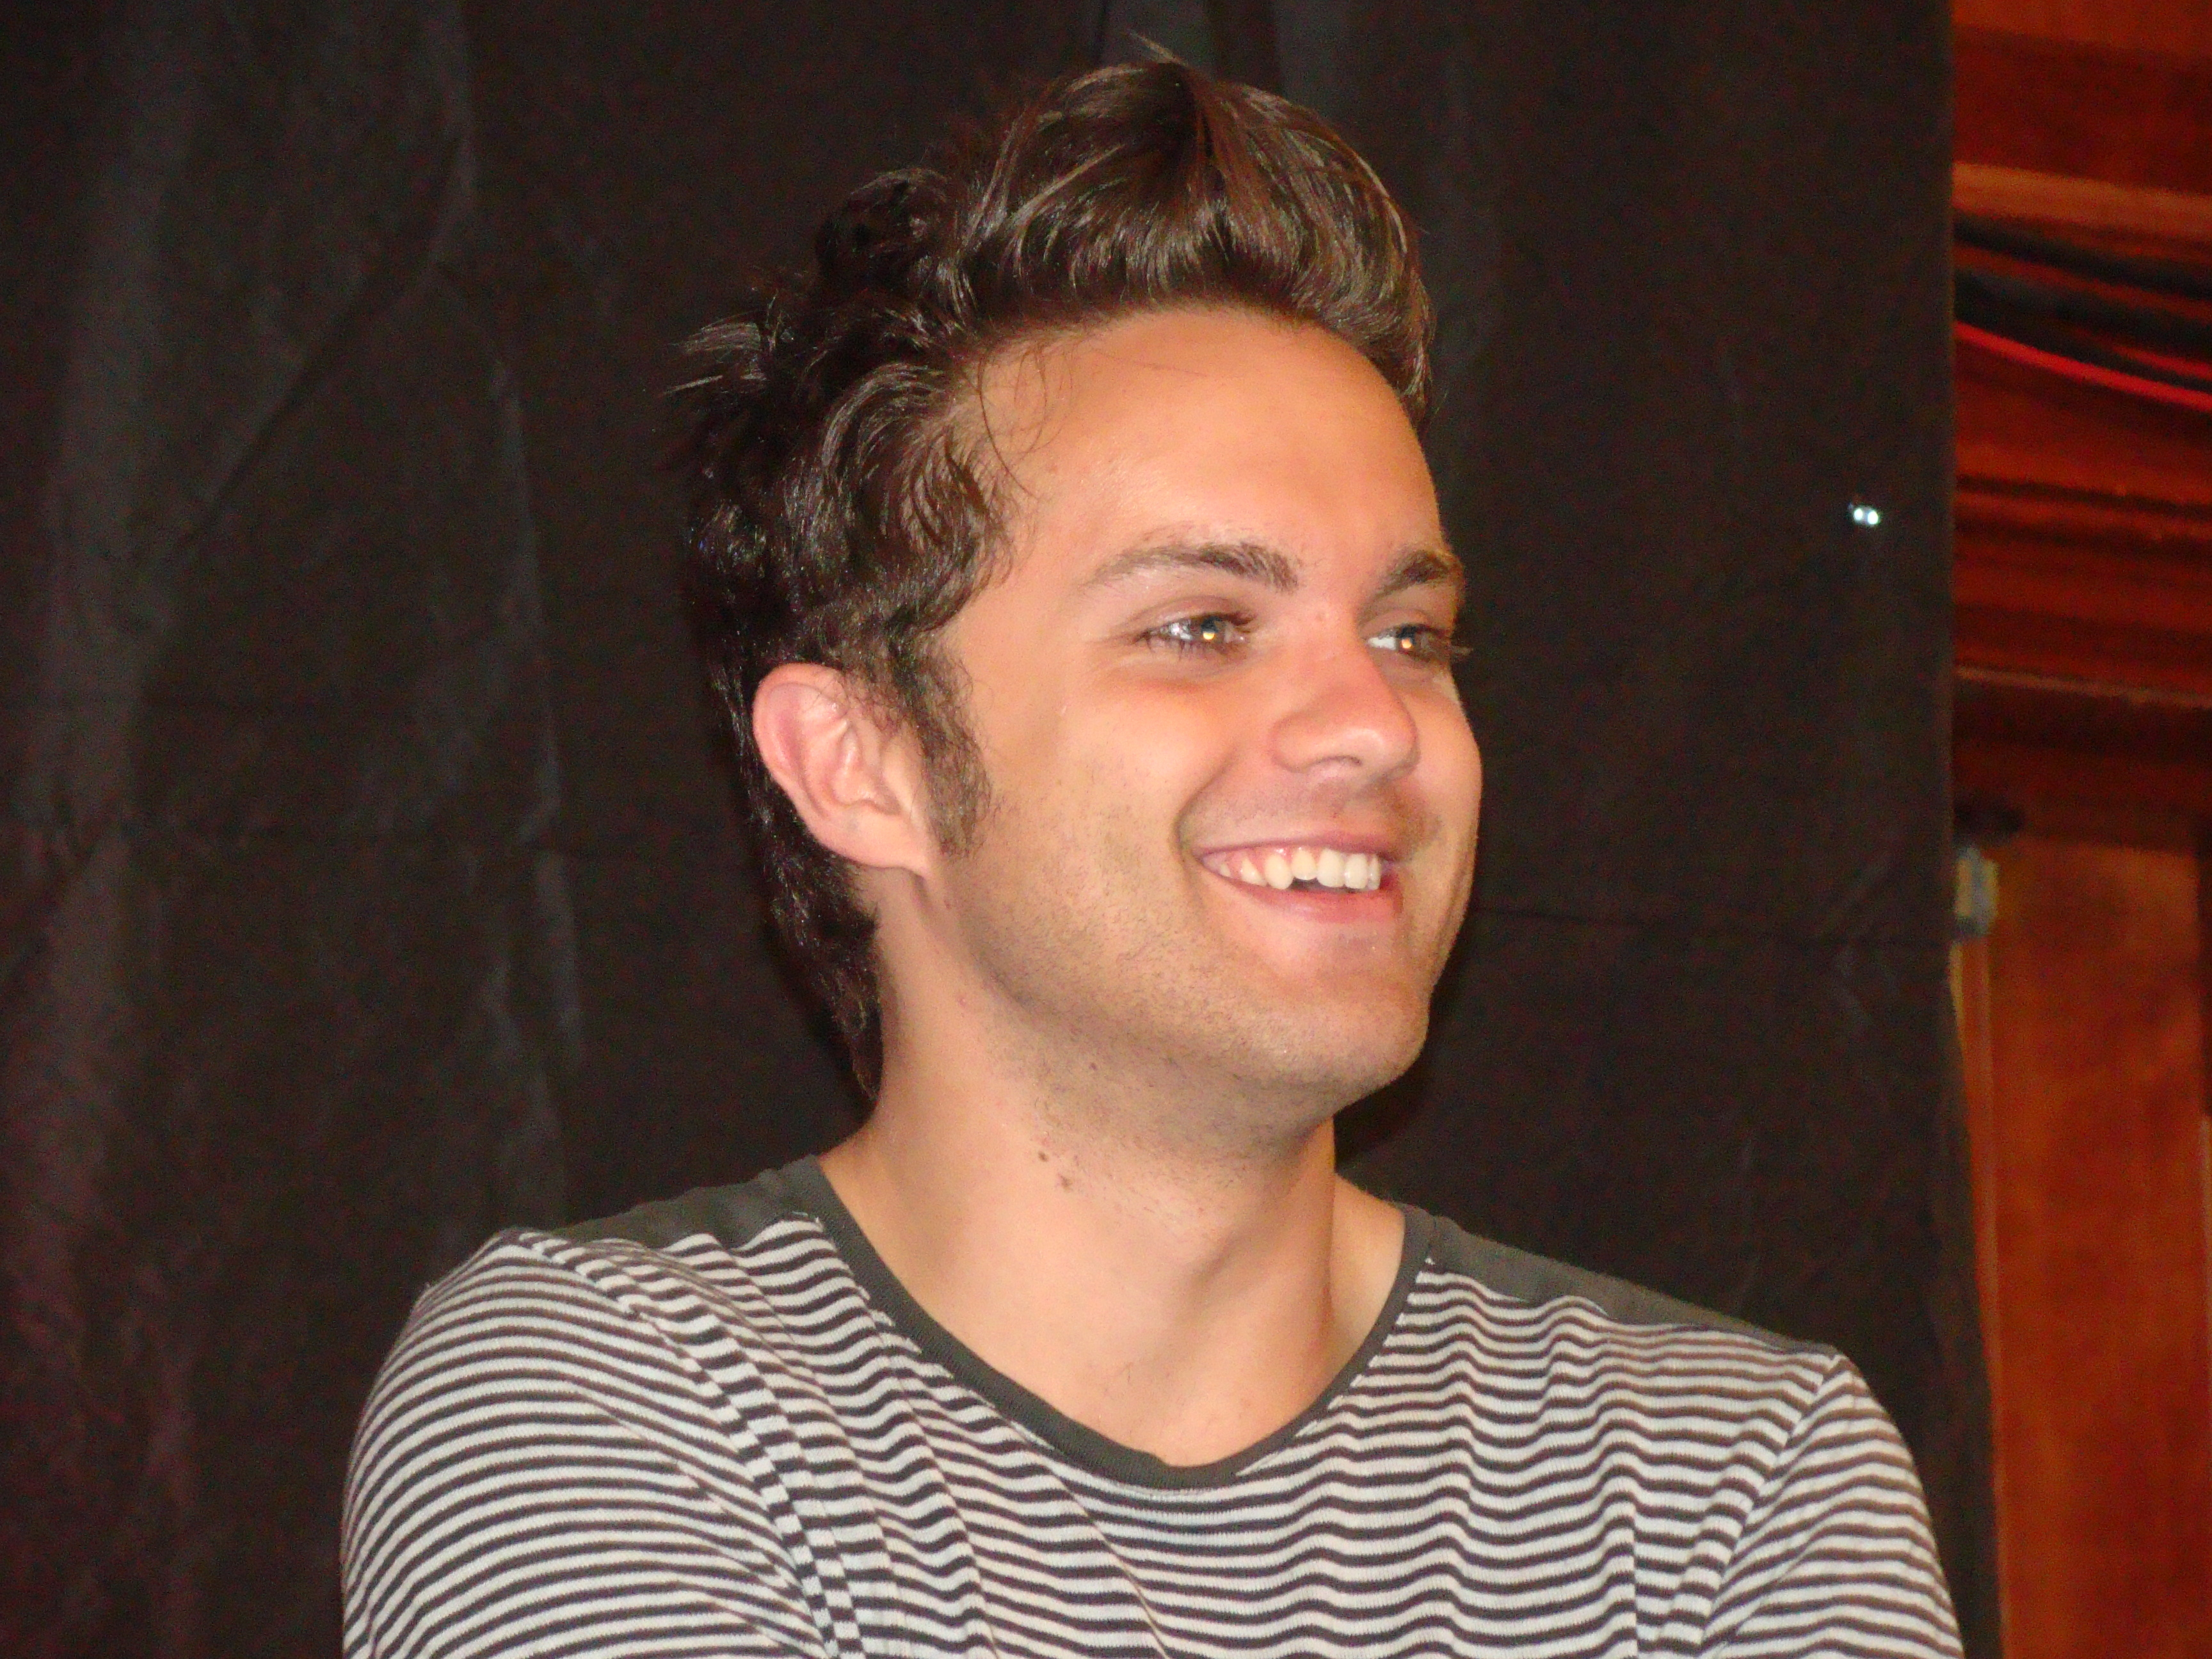 The Zogpod Collective Blog Has Moved To Wwwfeliciafollumcom Circuit Board Business Card Thomas Alexander Dekker Born December 28 1987 Is An American Film And Television Actor A Musician He Also Singer Written Produced